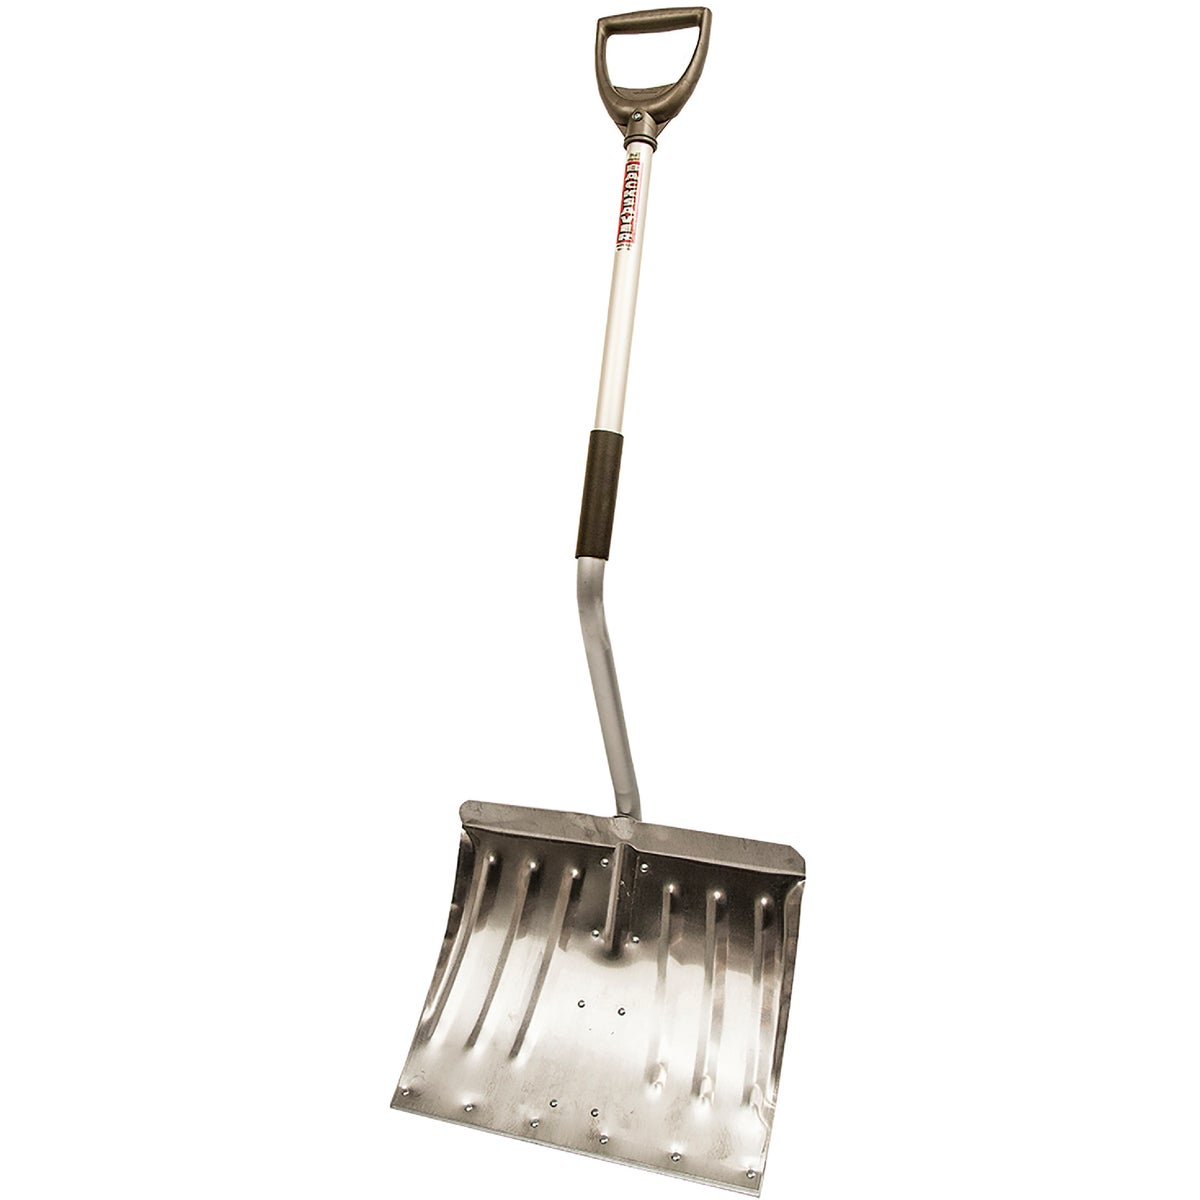 BENT HANDLE SNOW SHOVEL - 22BS by Rugg Manufacturing